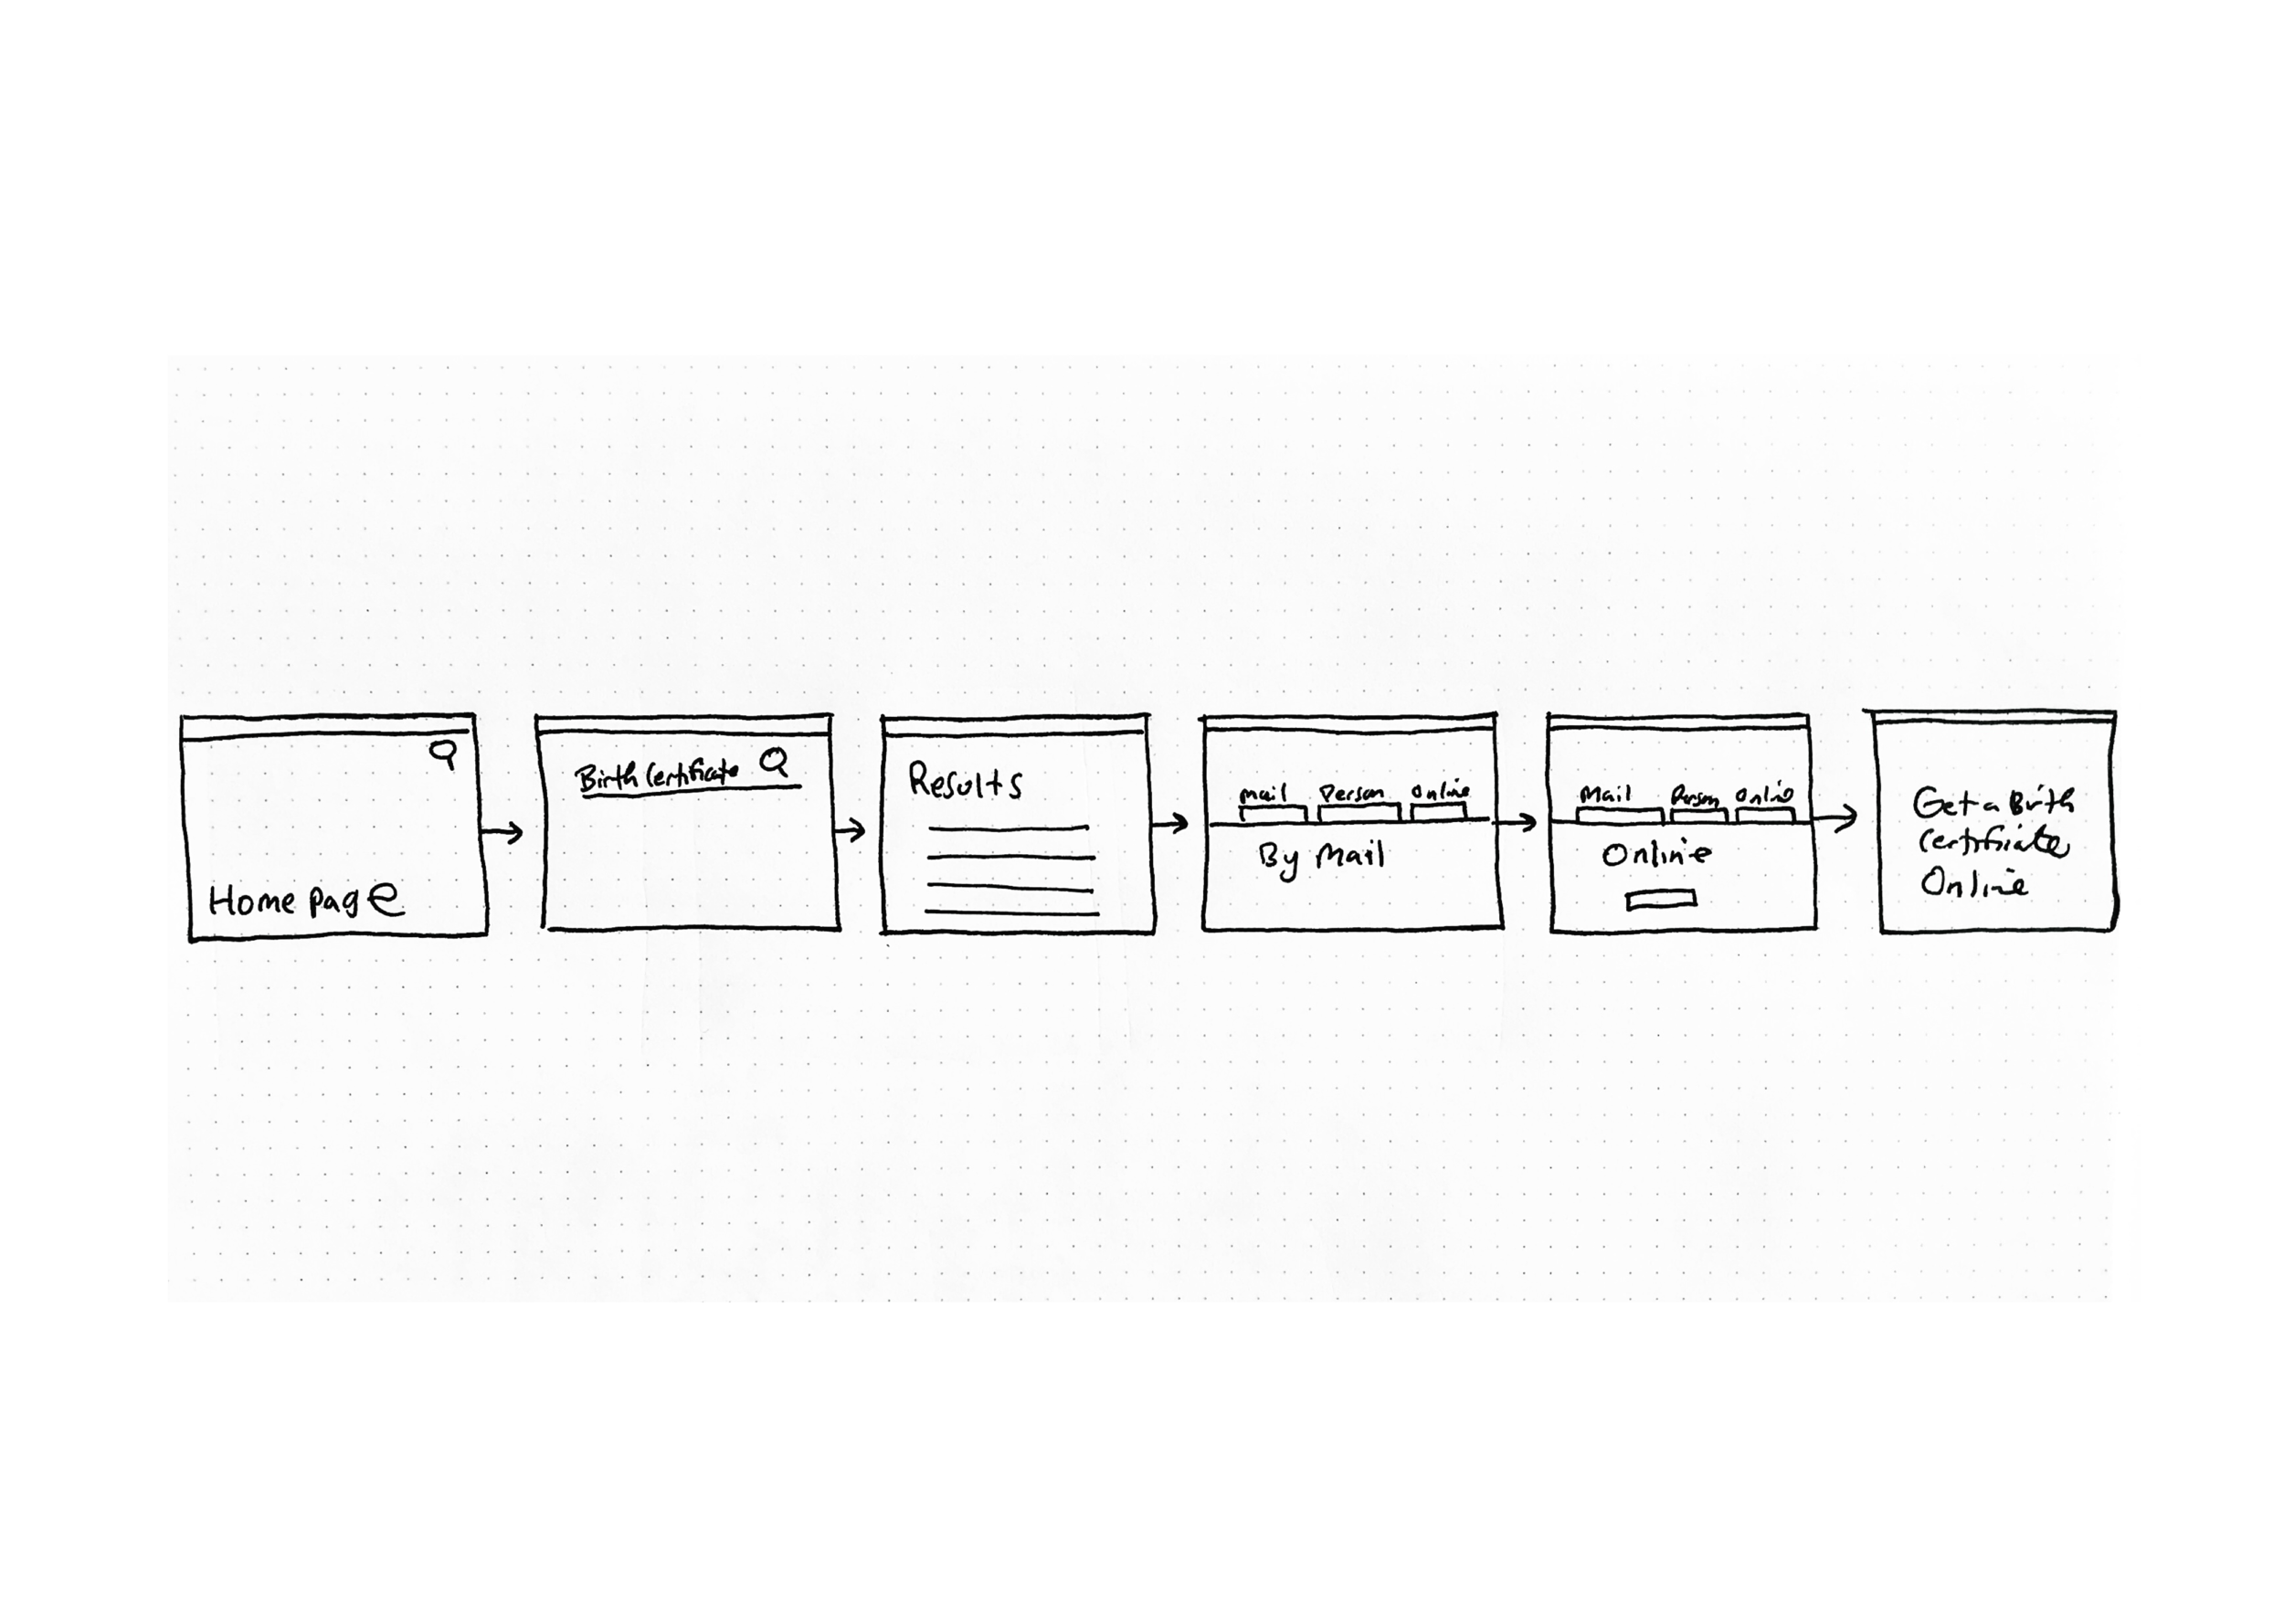 The task flow from my sketchbook investigating where to present the feature